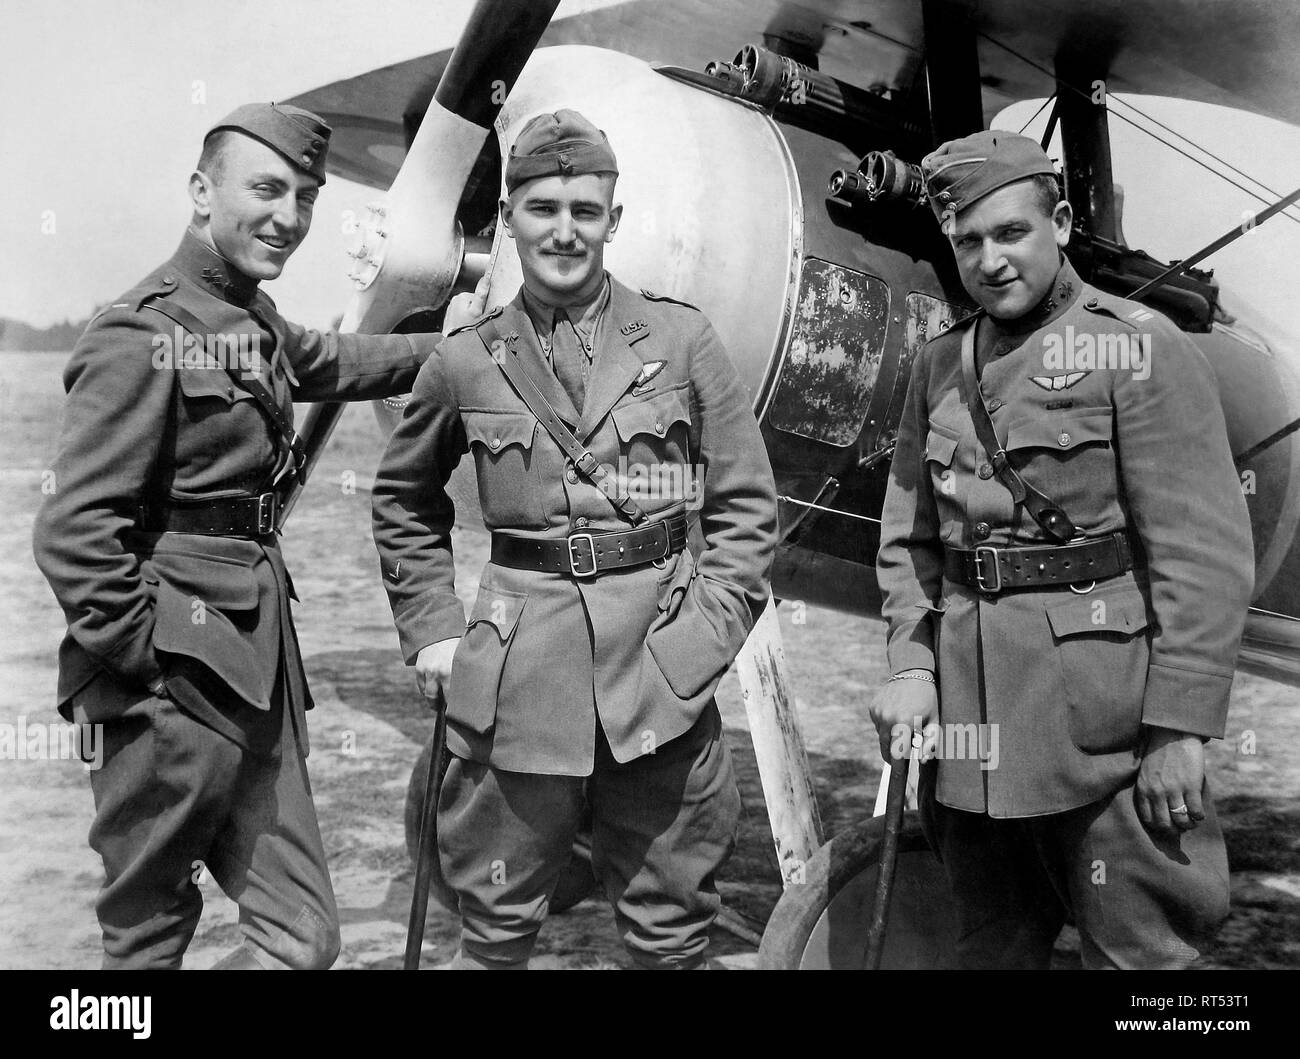 Notable aviators of the 94th aero suadron during World War II. - Stock Image